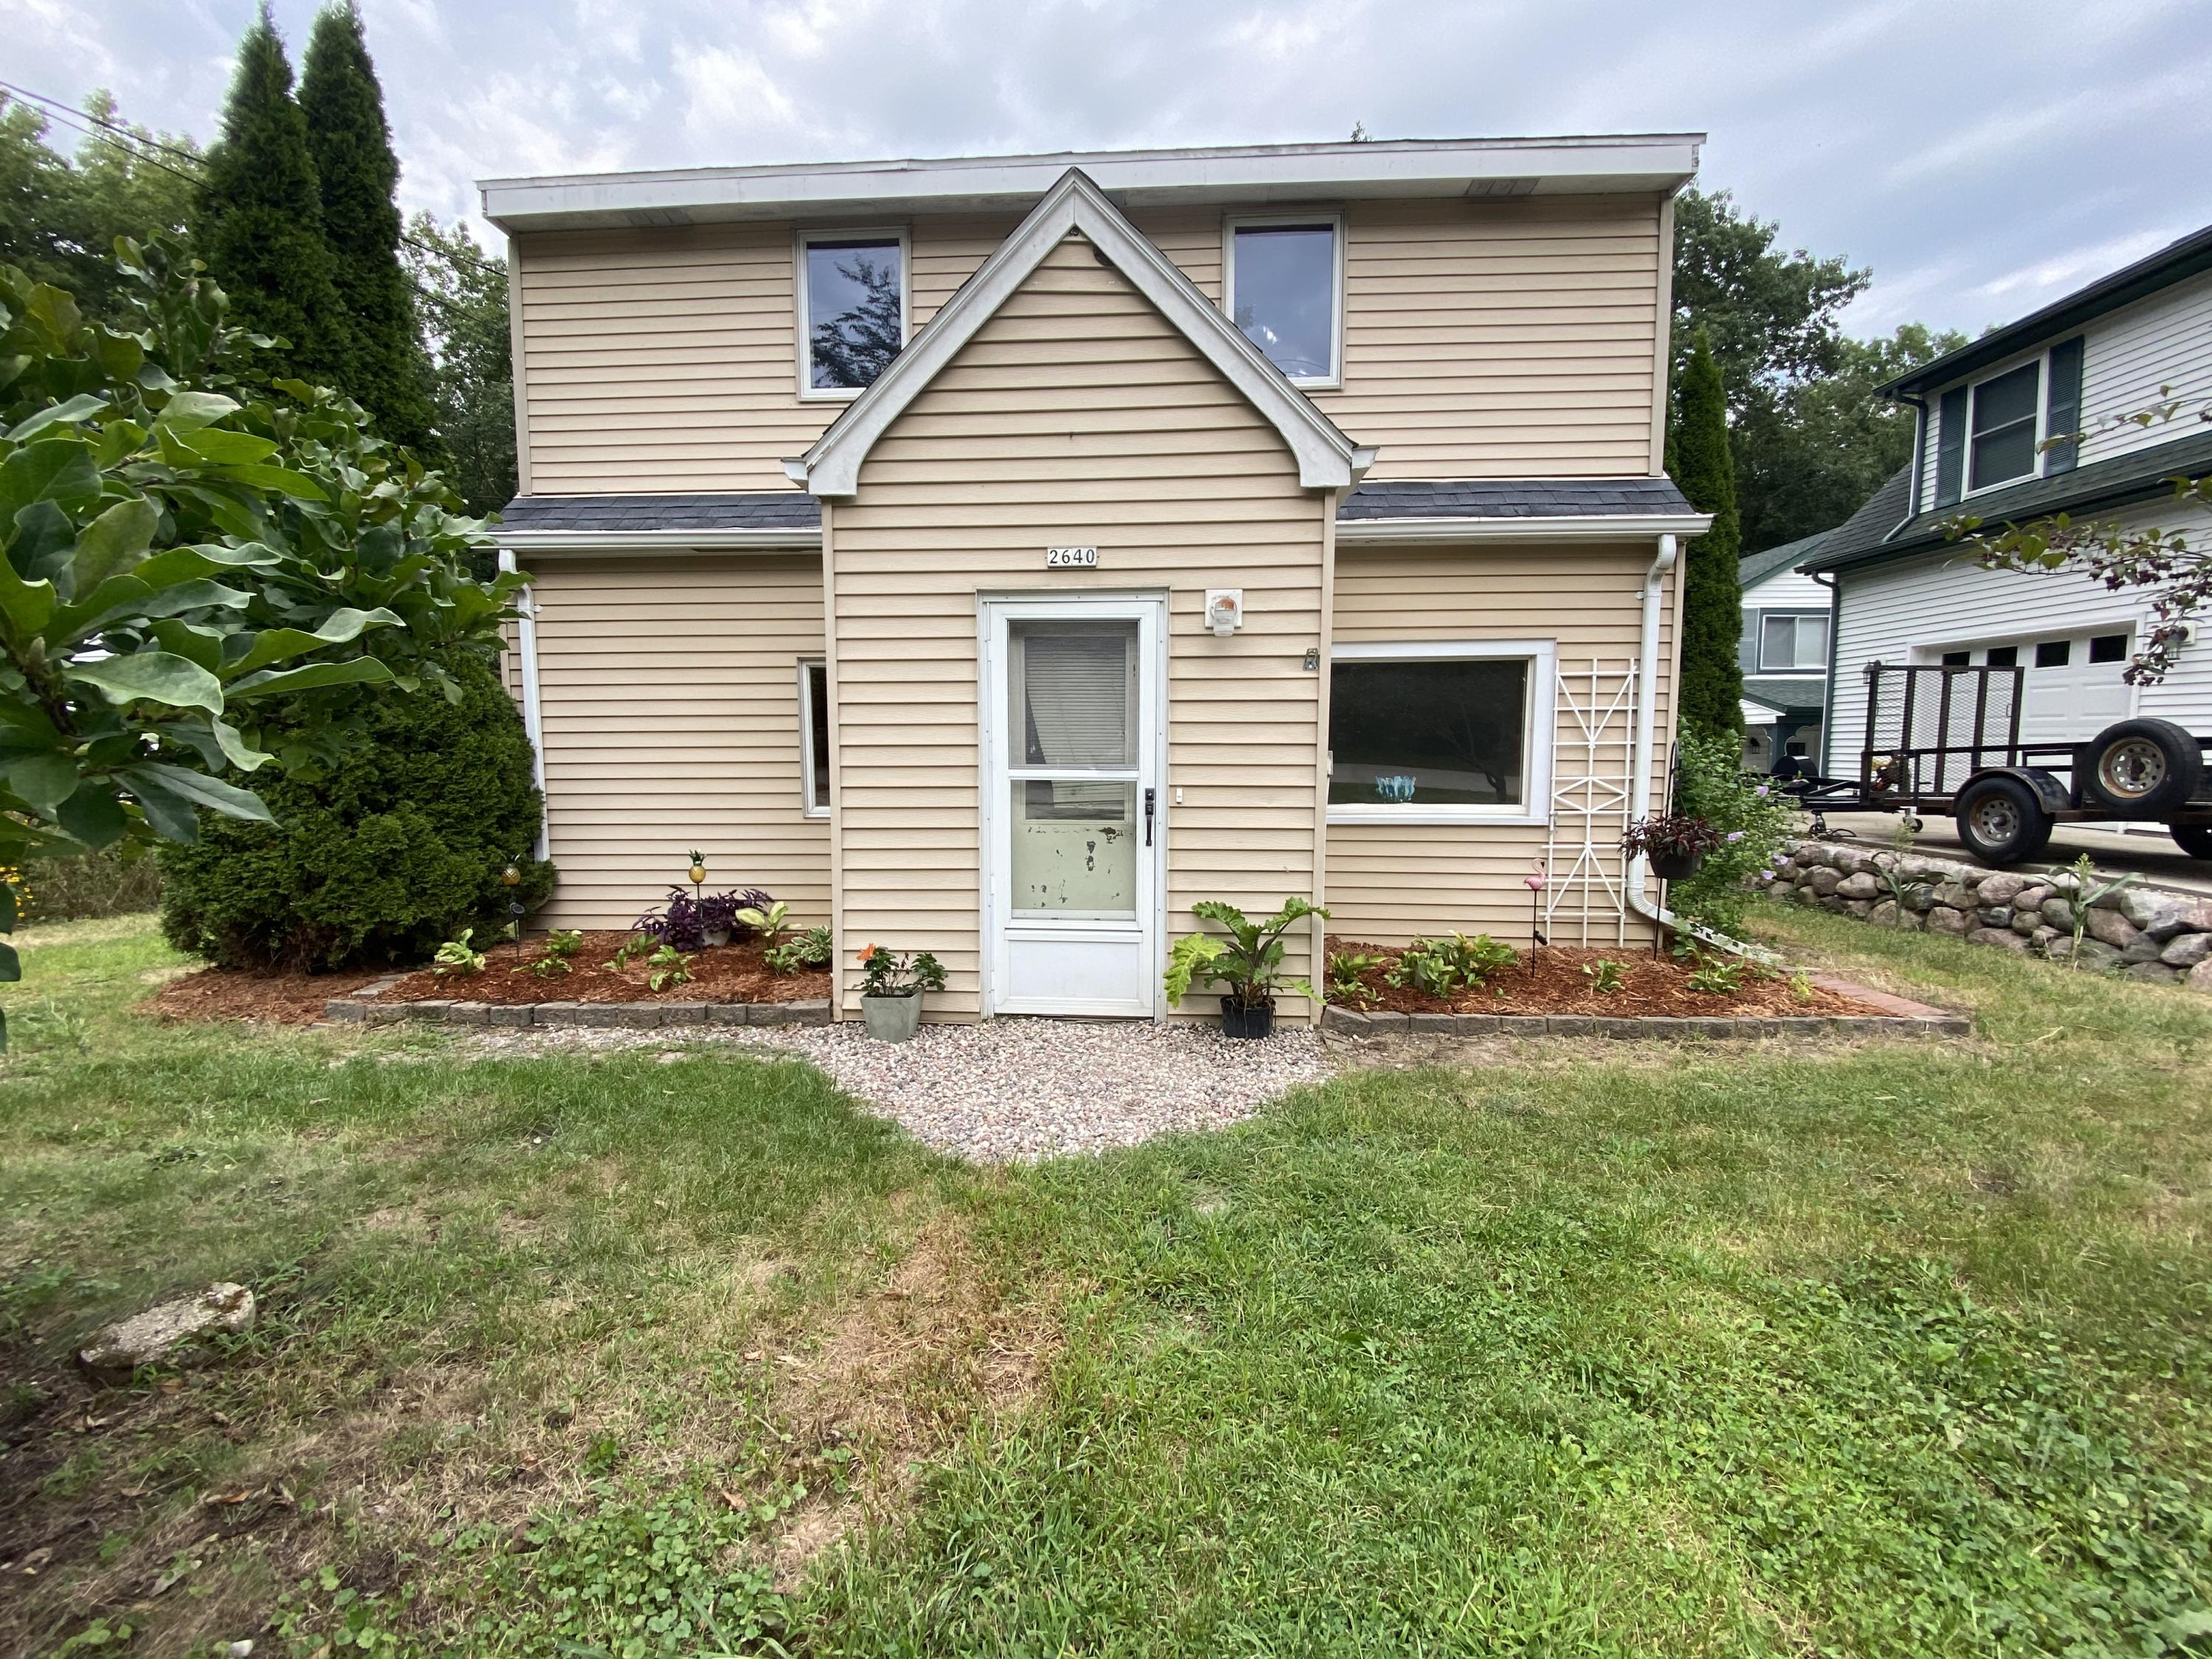 2640 Nagawicka Ave, Delafield, Wisconsin 53018, 3 Bedrooms Bedrooms, 6 Rooms Rooms,1 BathroomBathrooms,Single-Family,For Sale,Nagawicka Ave,1734673